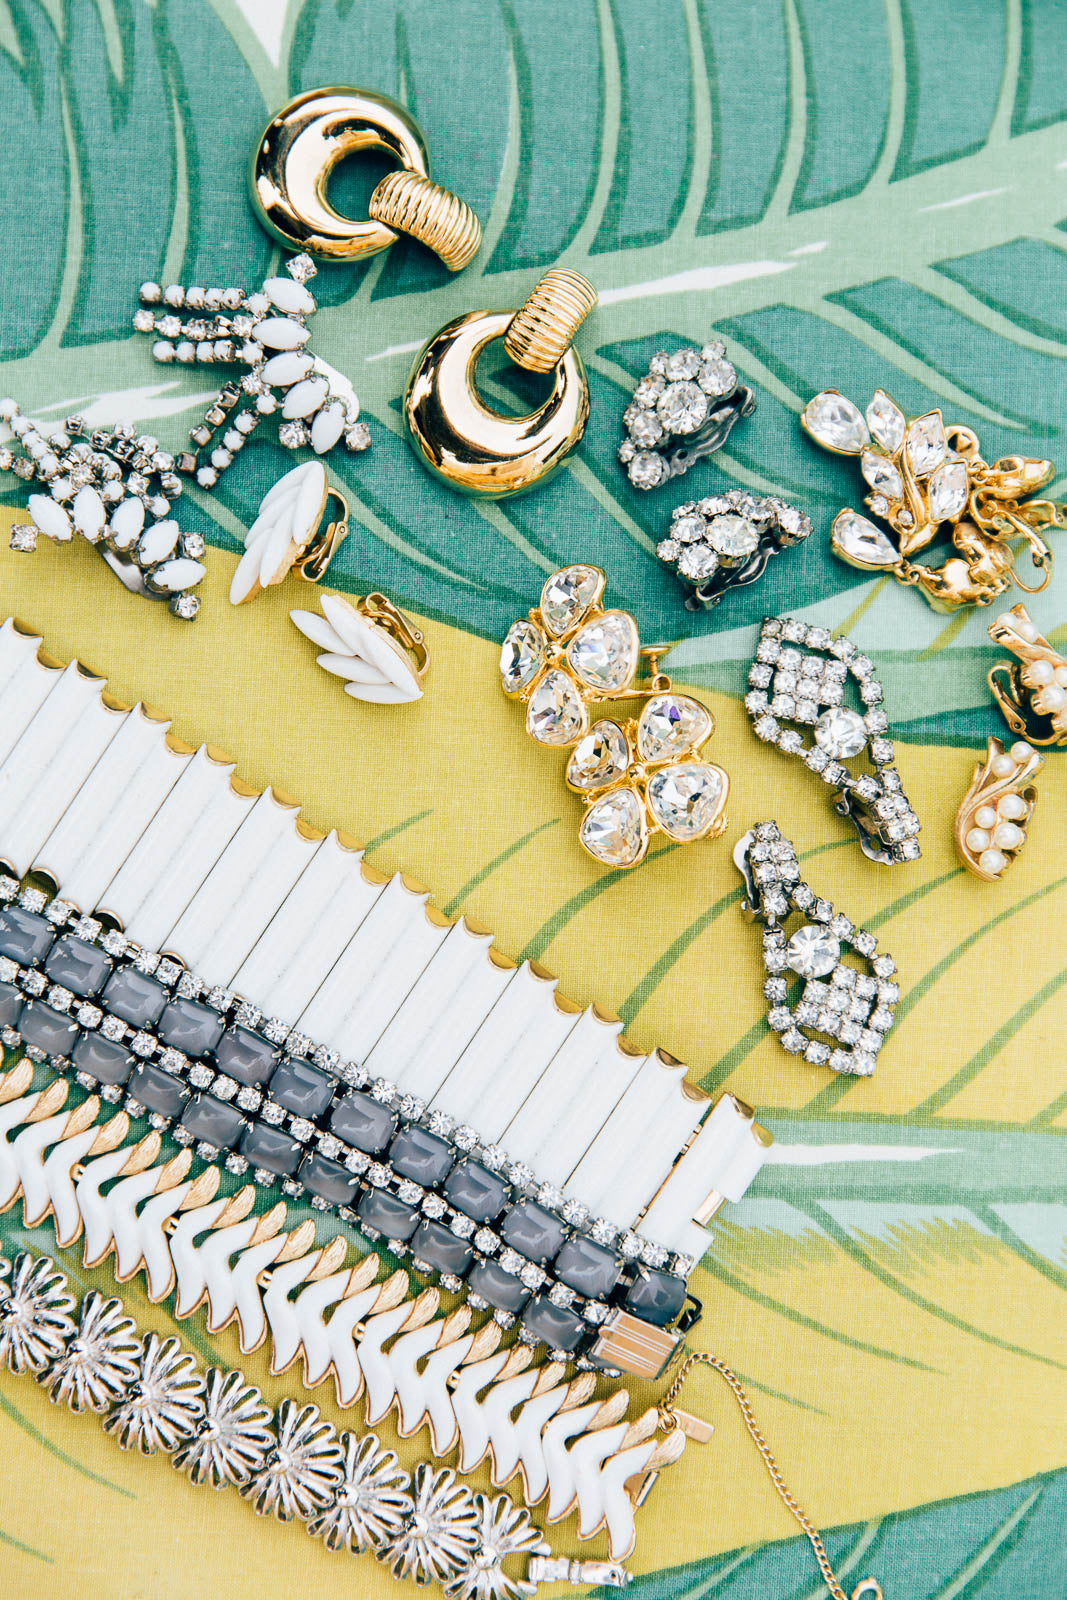 Tips for Buying Vintage Jewelry